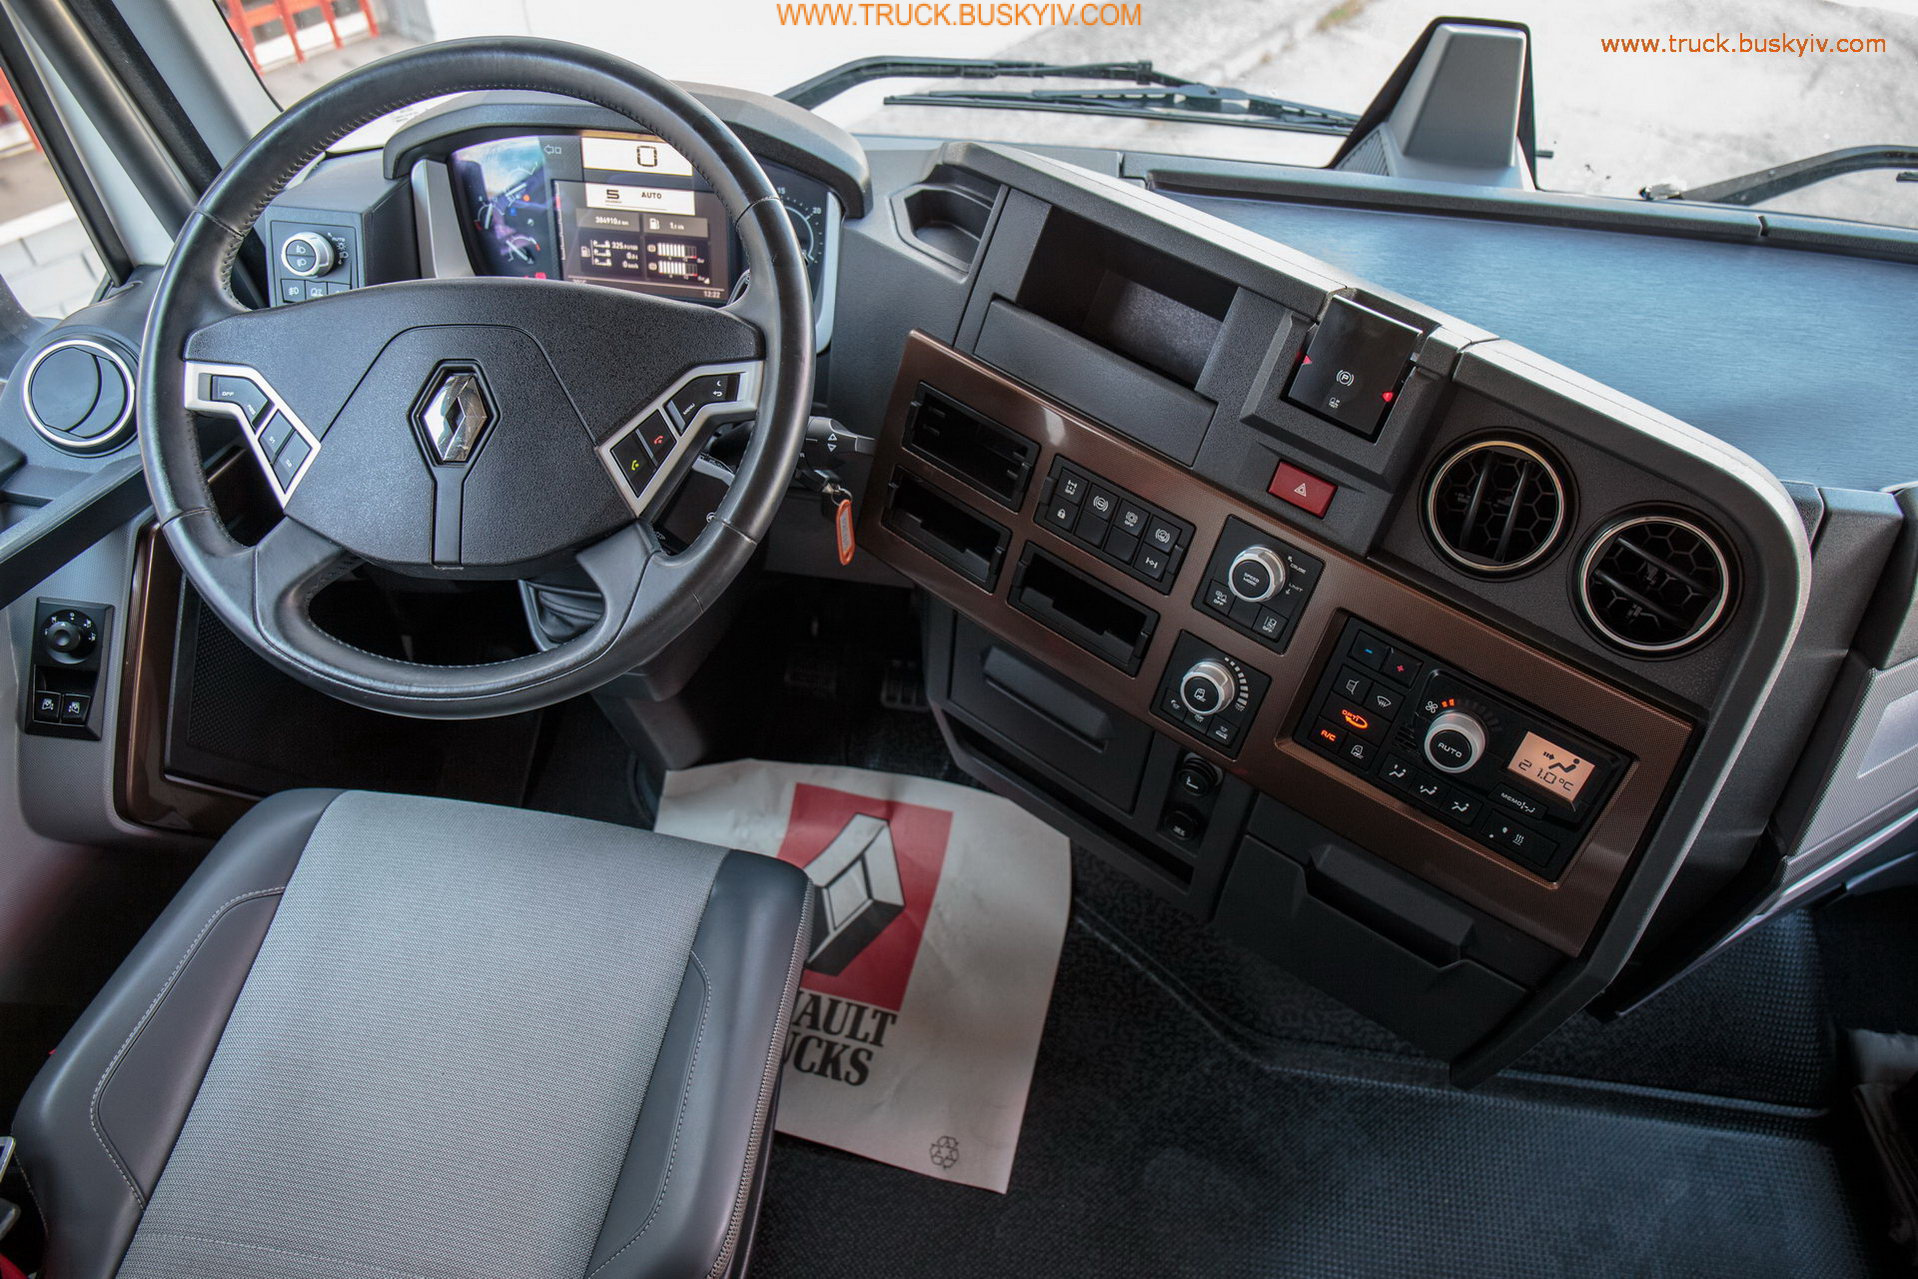 2014_renault_t520_wh_12